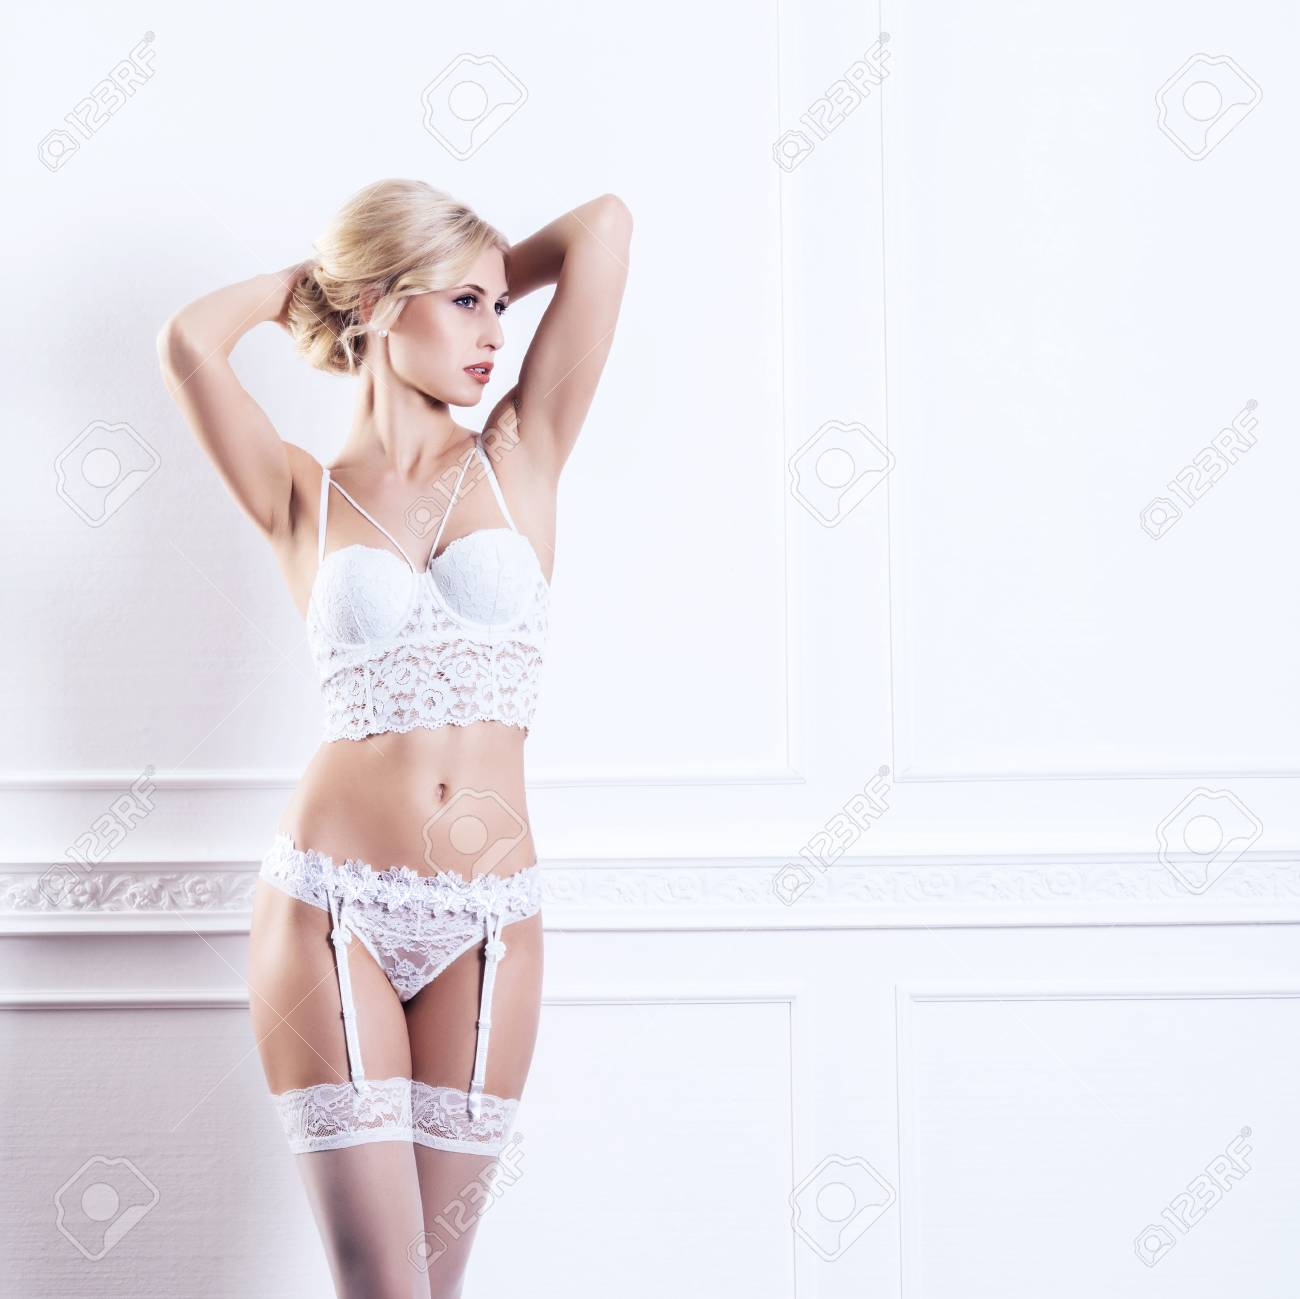 1cec413531b Sexy and beautiful young girl in a bridal underwear. Bride in erotic  lingerie and hosiery